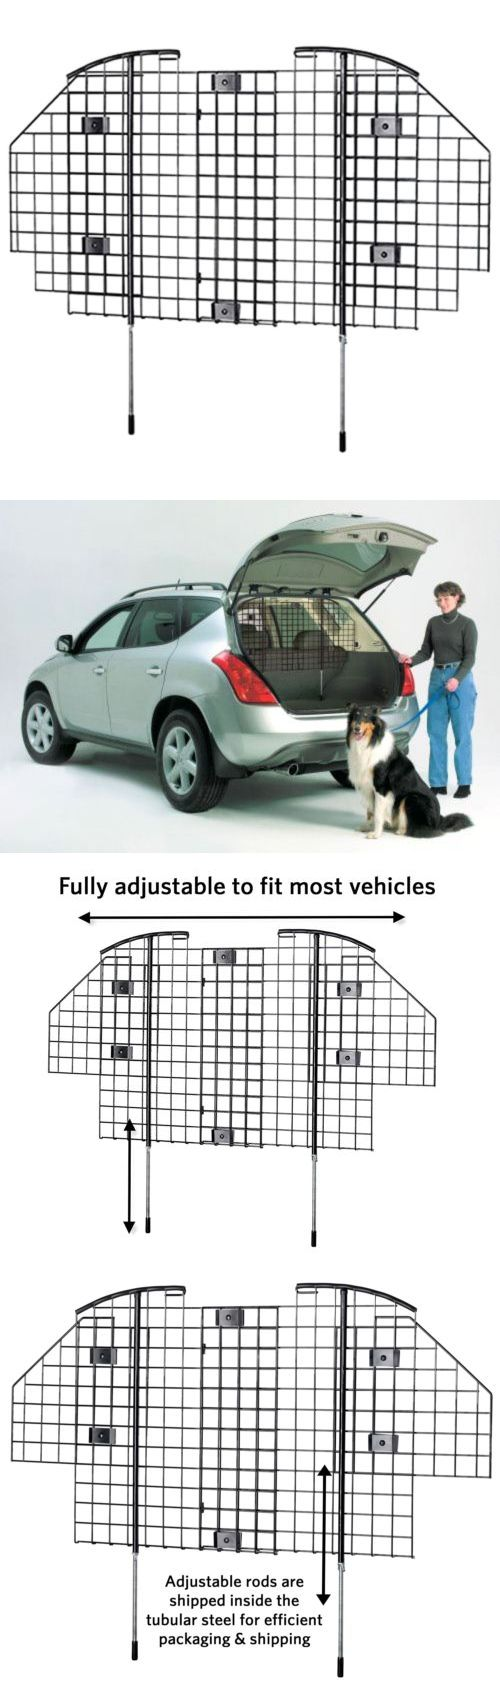 Car Seats and Barriers 46454: Dog Barrier For Suv Restraint For Car Van Vehicle Gate Universal Pet Cage Travel BUY IT NOW ONLY: $57.93